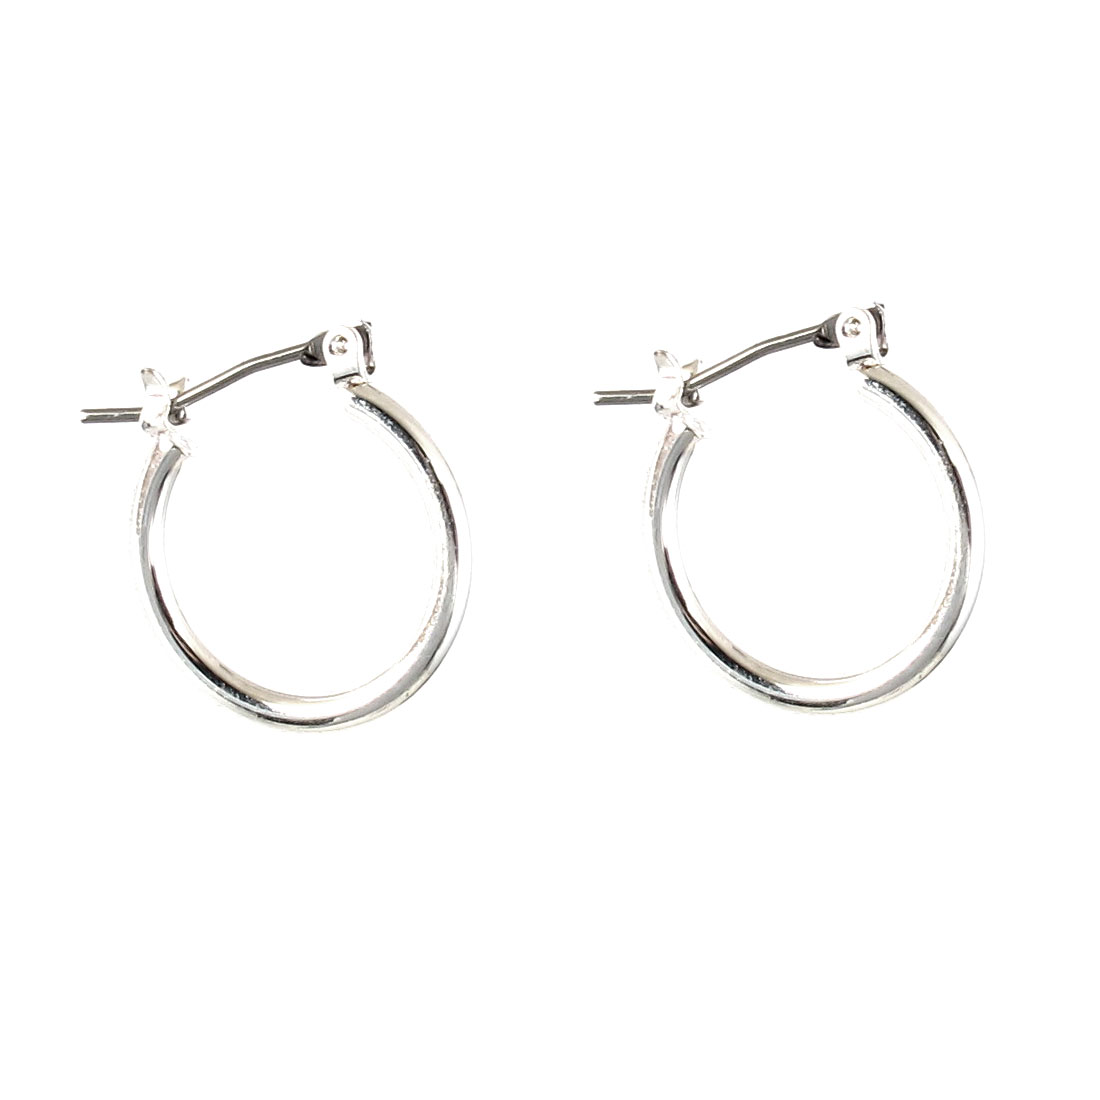 "Lady Women Metal Edge Circle Hoop Pierced Earrings Silver Tone 0.7"" Dia Pair"